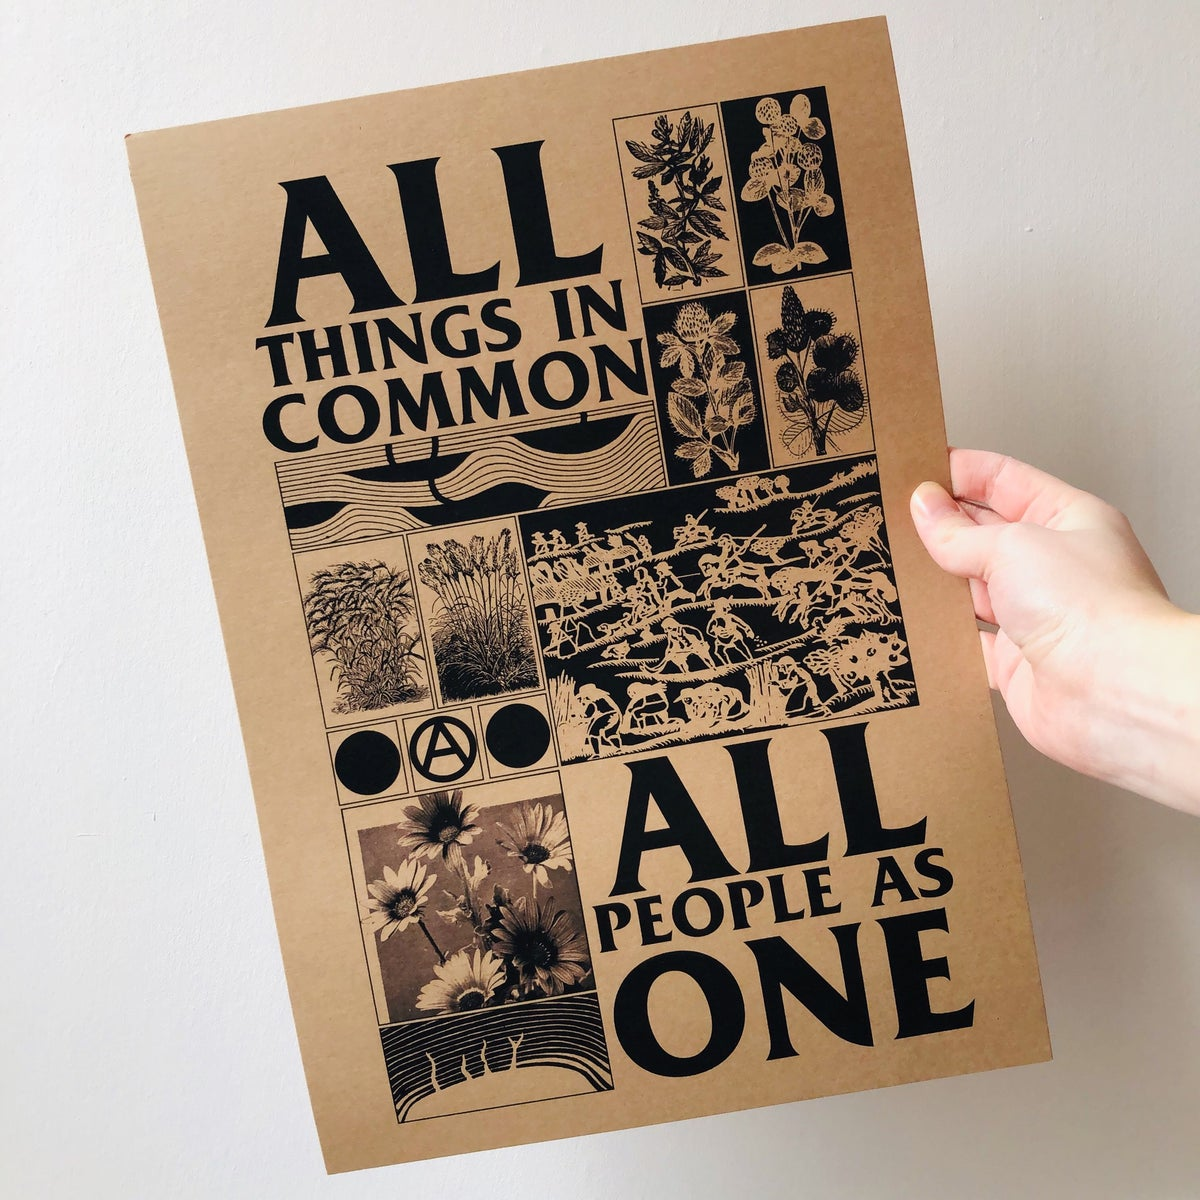 Image of All Things in Common, All People One digital A3 print